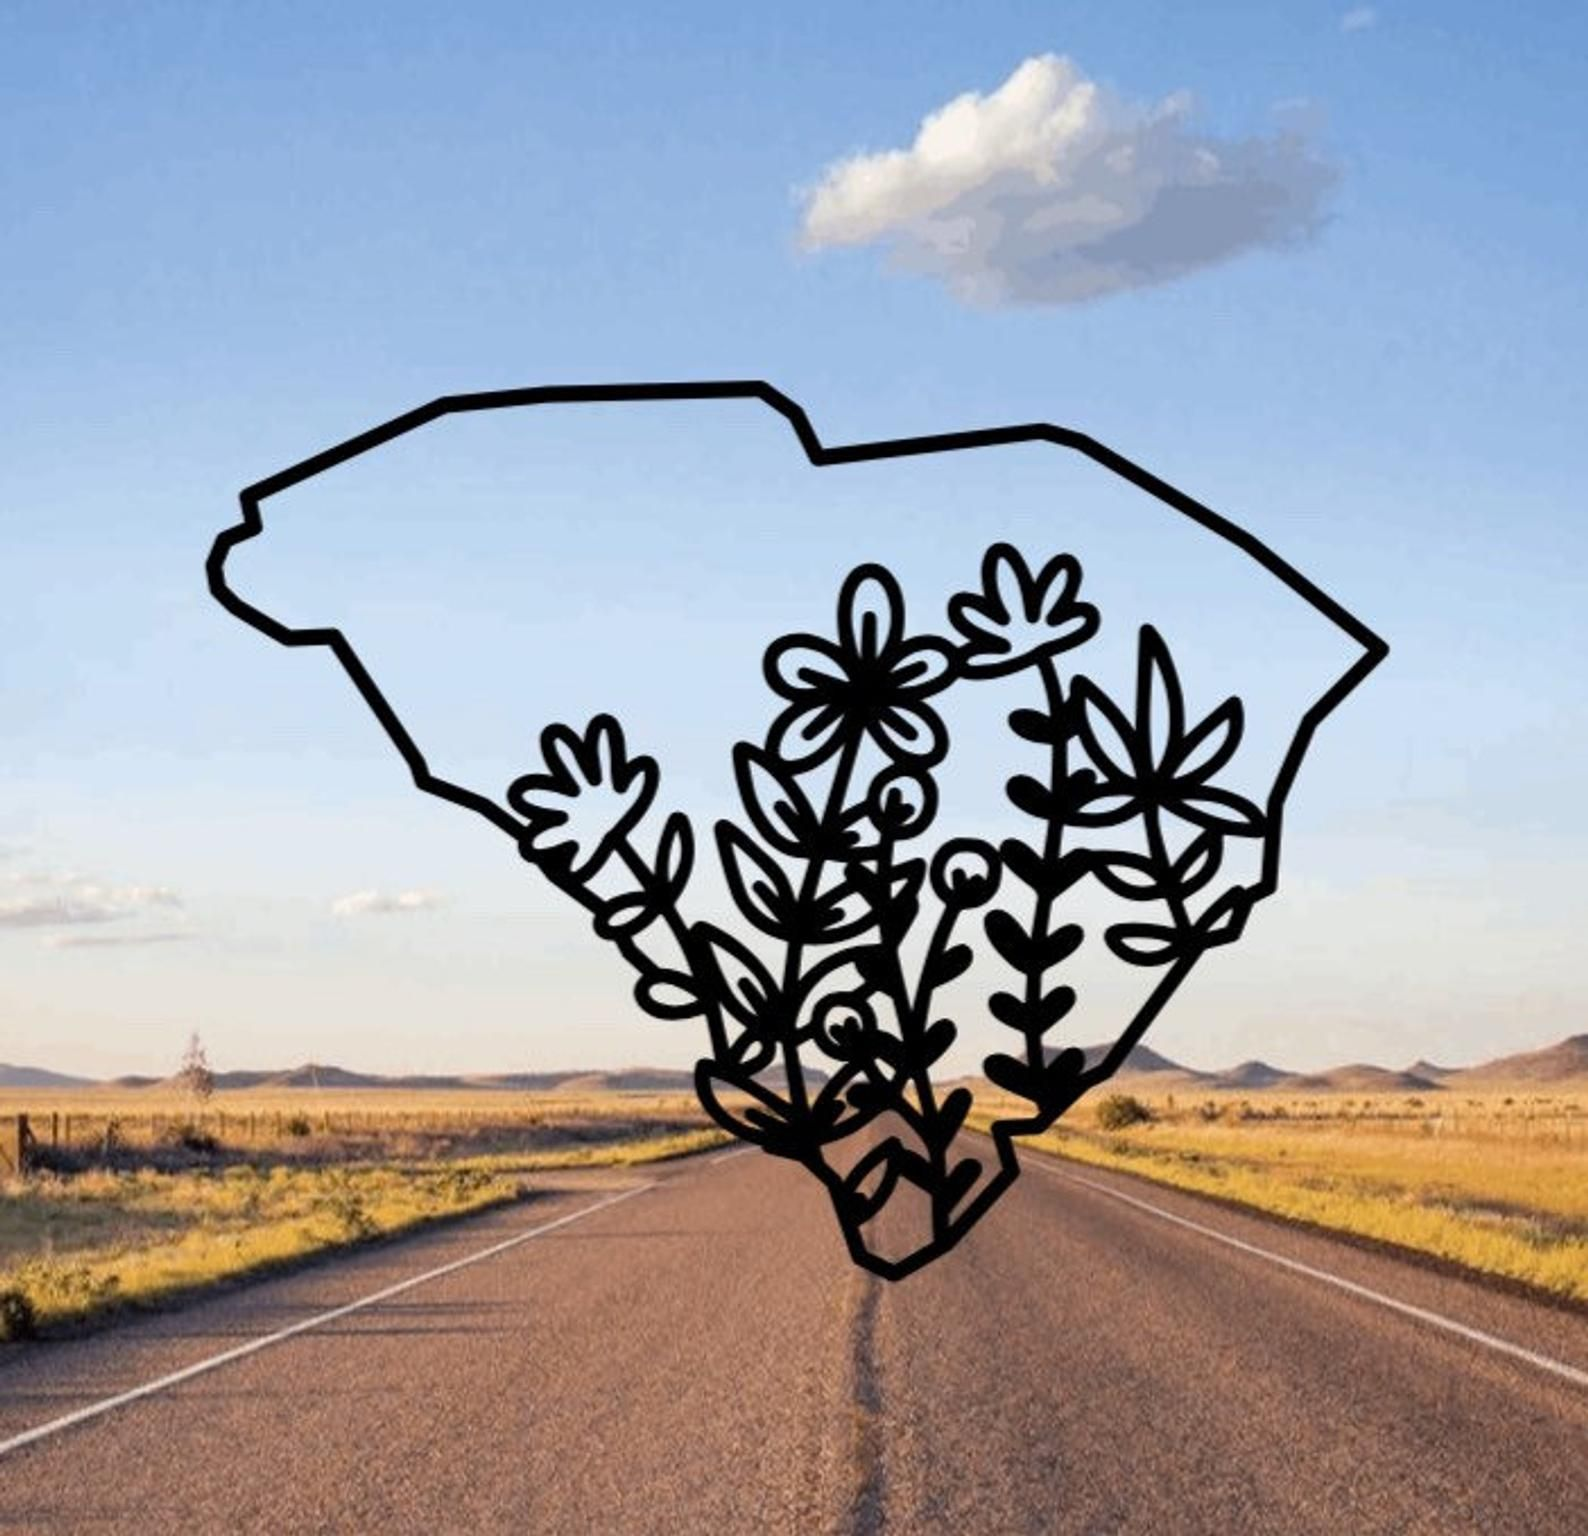 South Carolina Flower Decal Wild Flowers State Home Car Etsy Floral Stickers Wild Flowers Flowers [ 1536 x 1588 Pixel ]